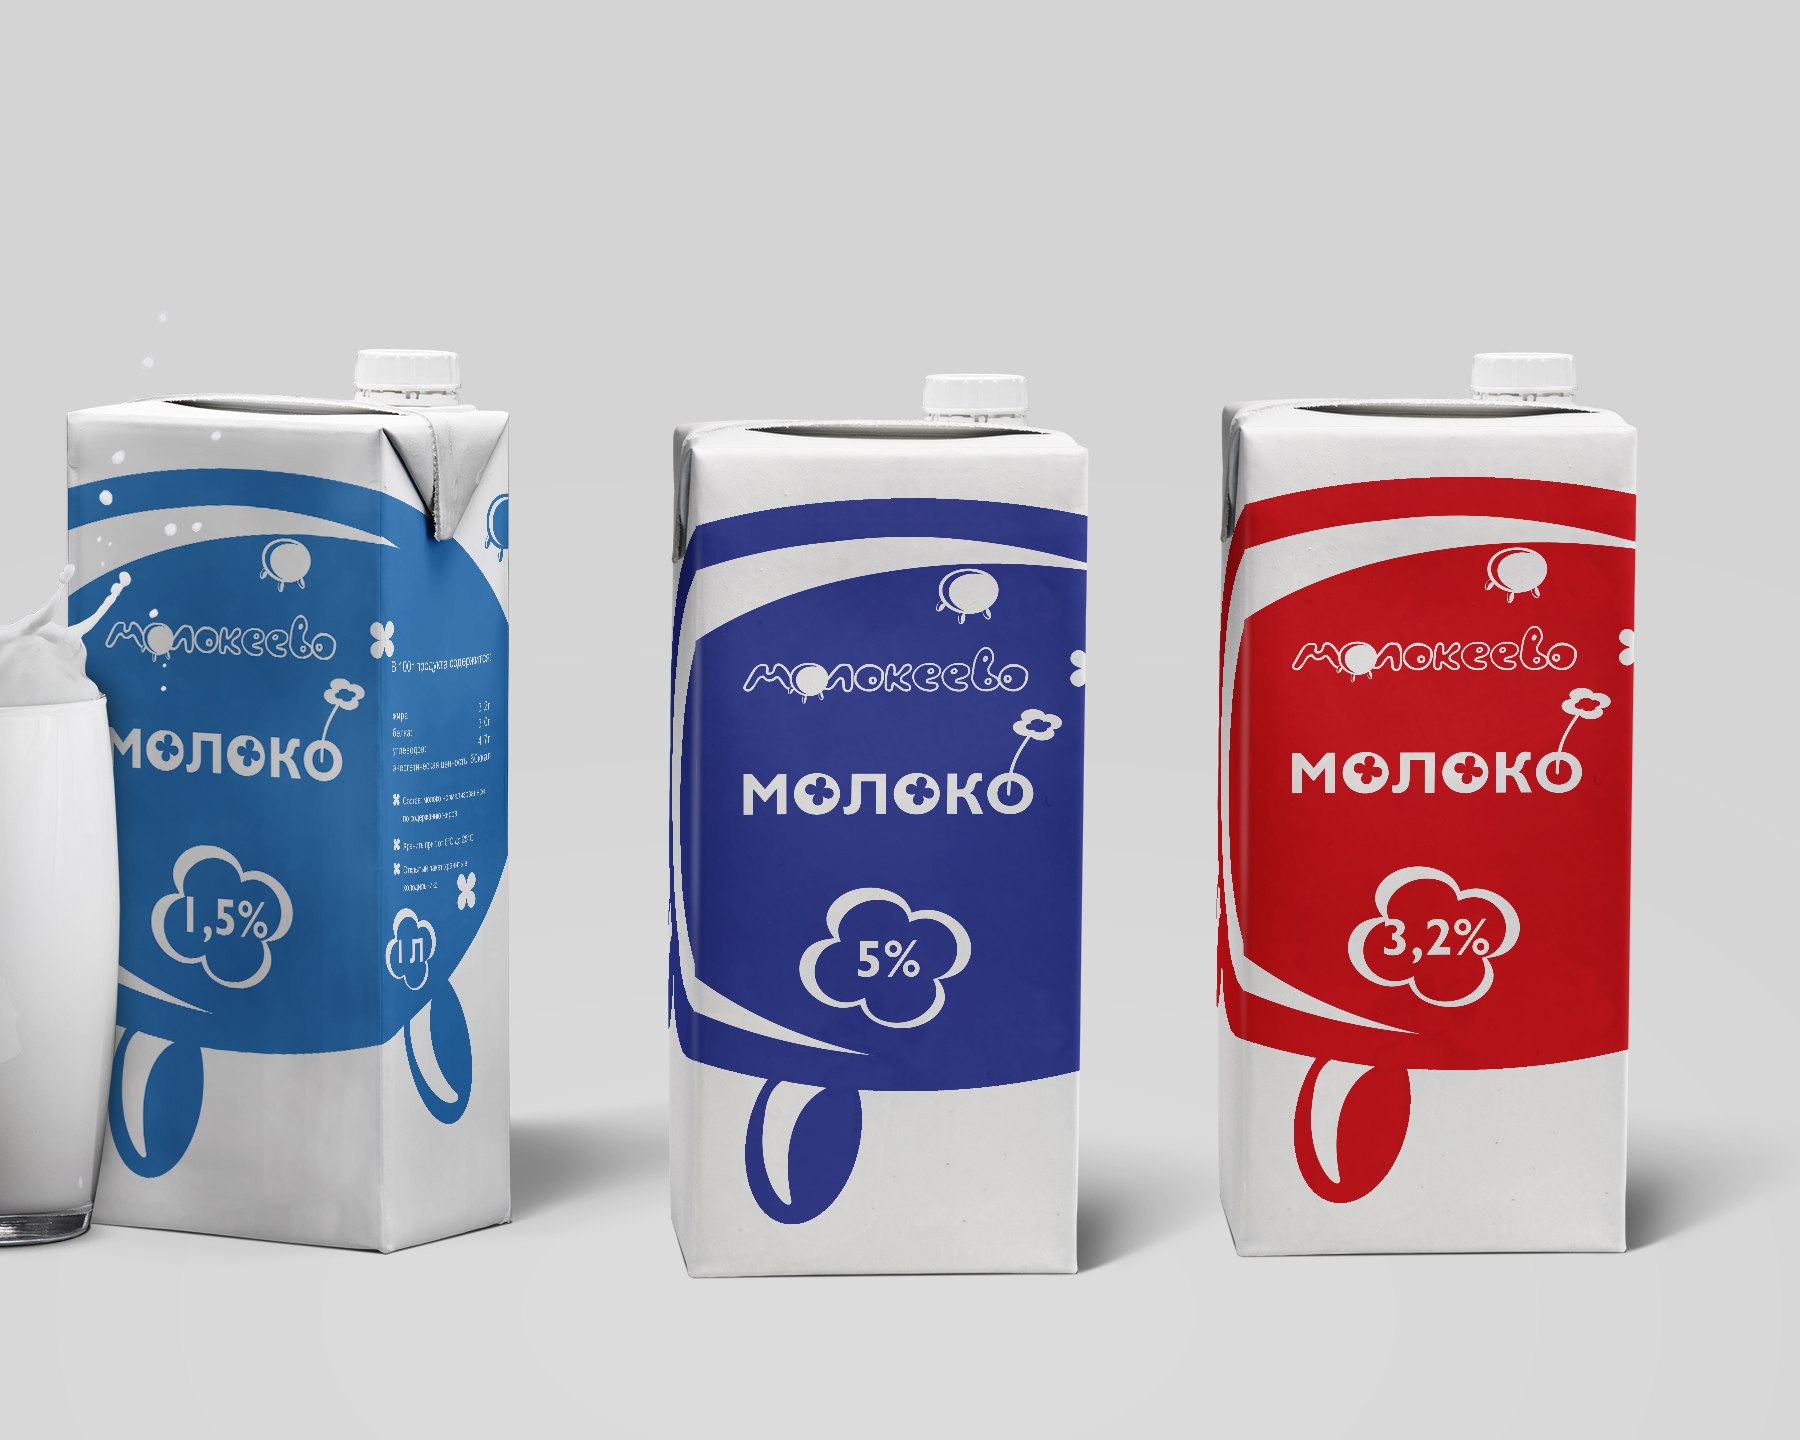 Molokeevo - Milk packaging